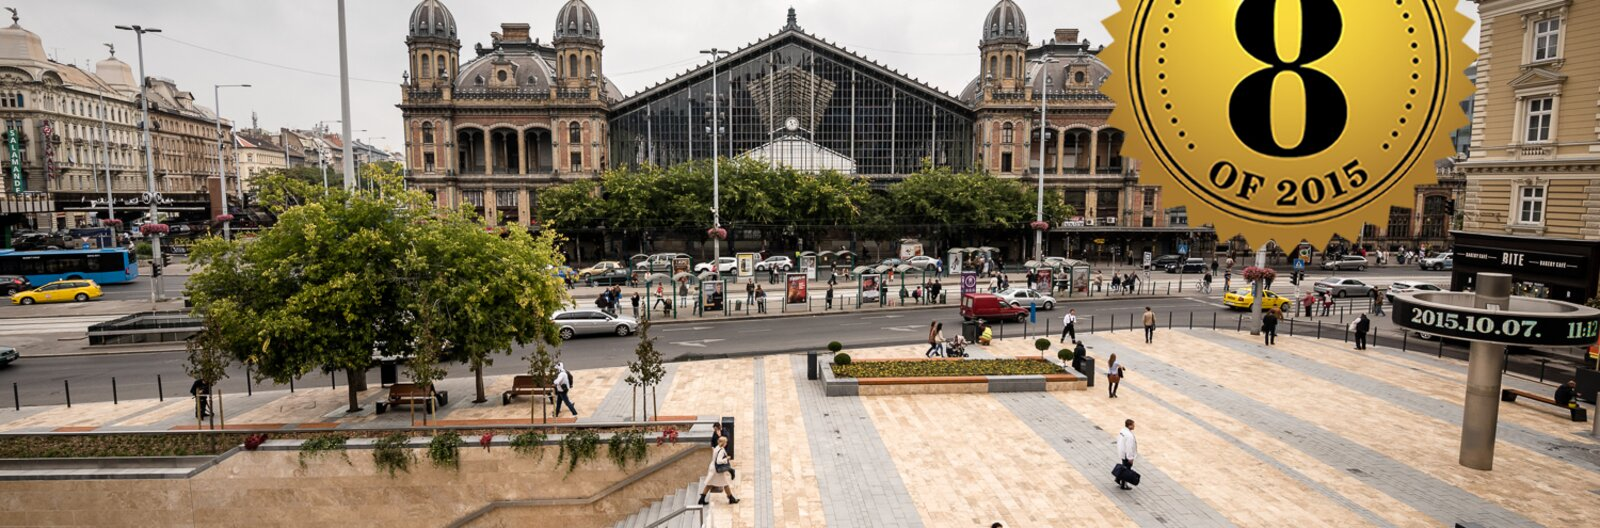 8 great refurbished public spaces in Budapest of 2015